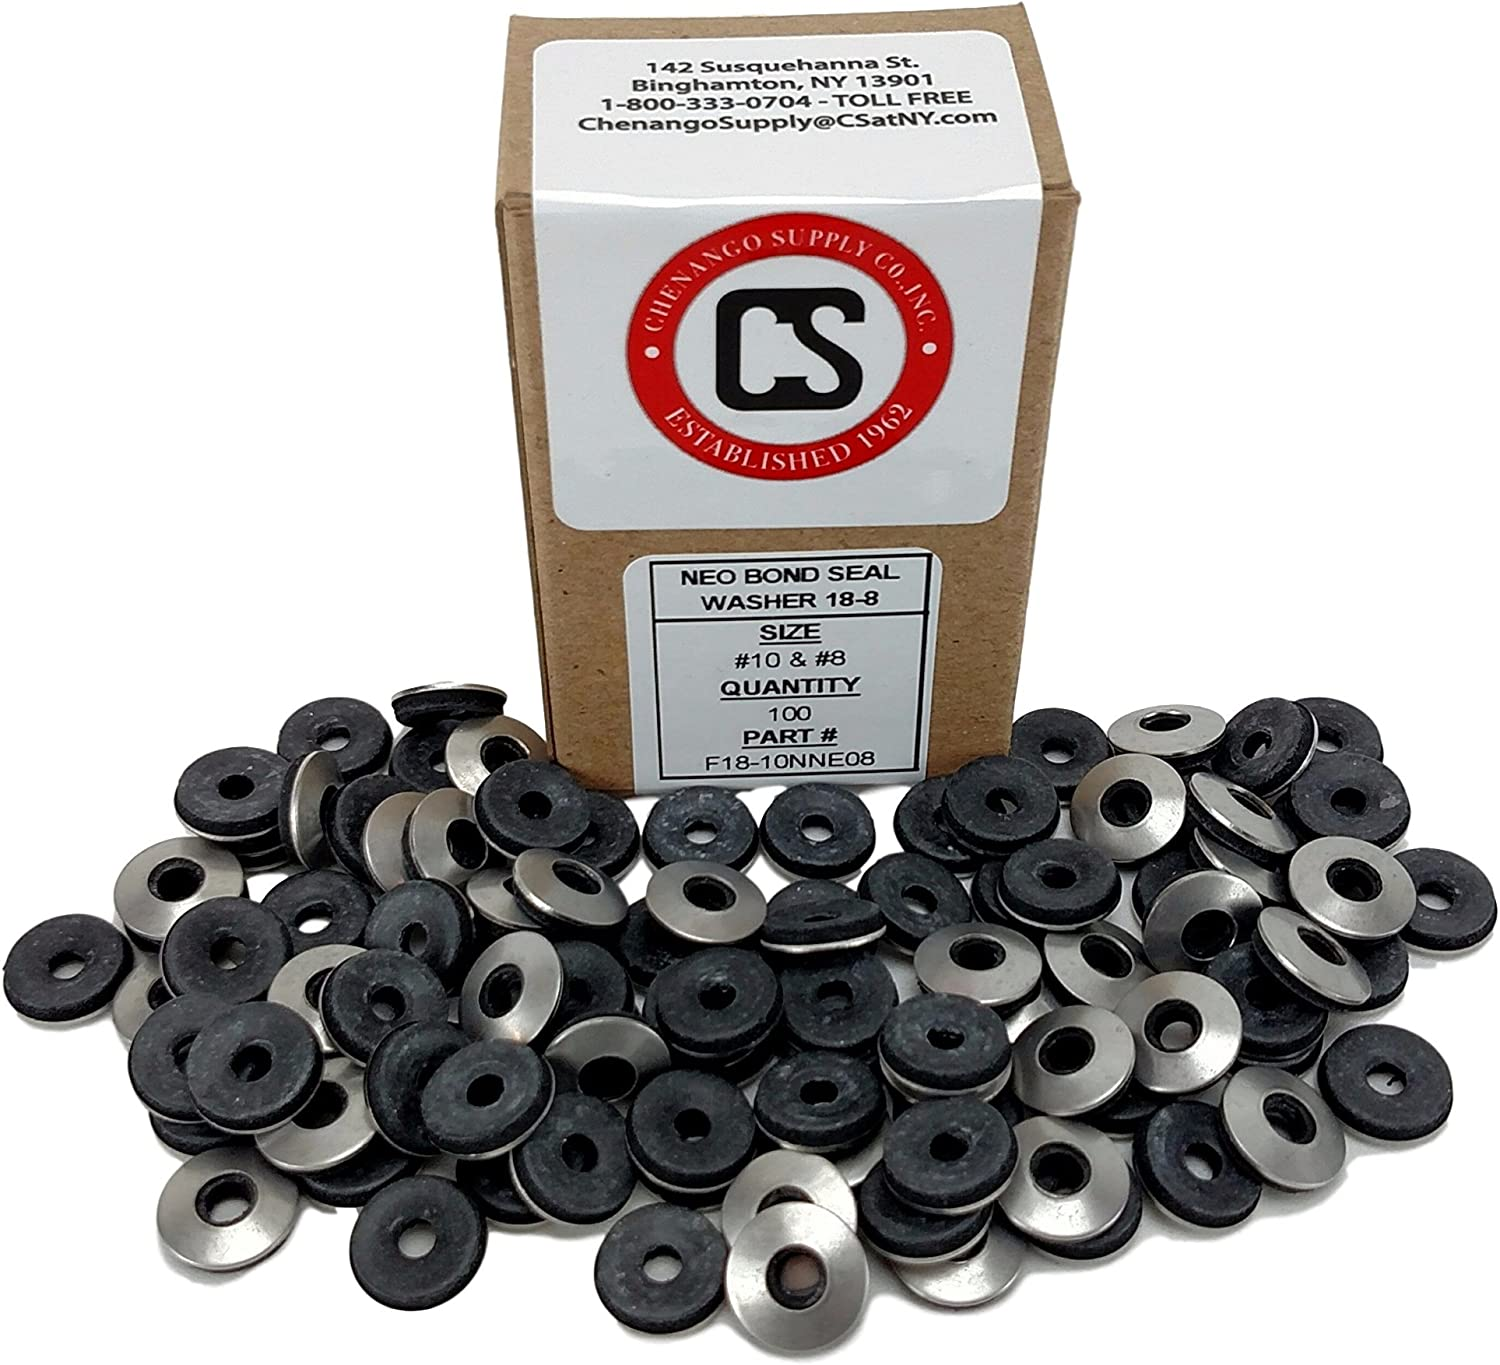 #20-9 Thread Size Pack of 900 Pack of 900 Hex Washer Head Zinc Plated 1-3//4 Length Type A 1-3//4 Length Hex Drive Steel Sheet Metal Screw Small Parts 3128AW